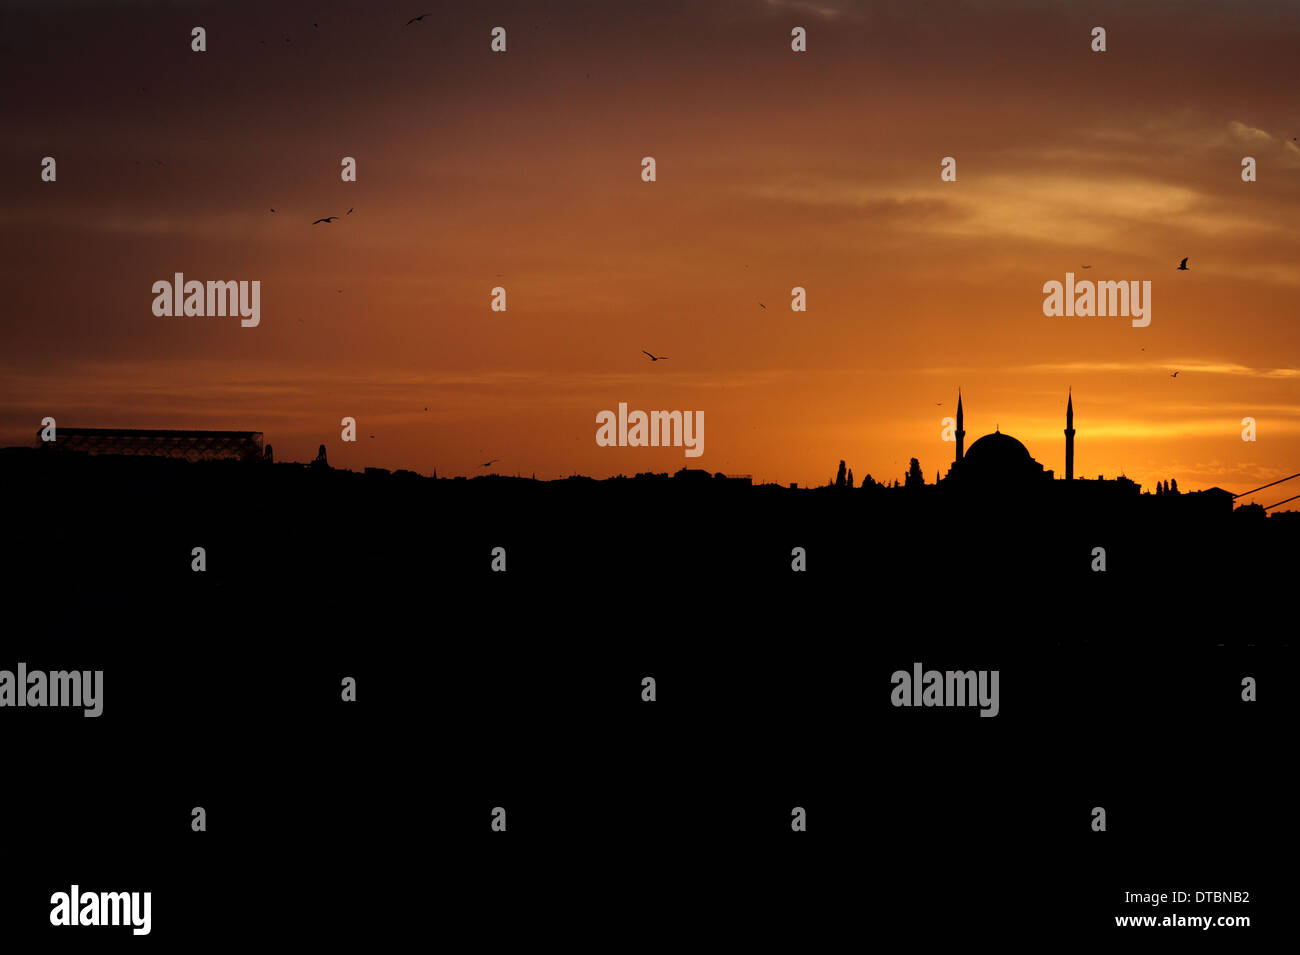 Silhouette of the Fatih Mosque at sunset Stock Photo